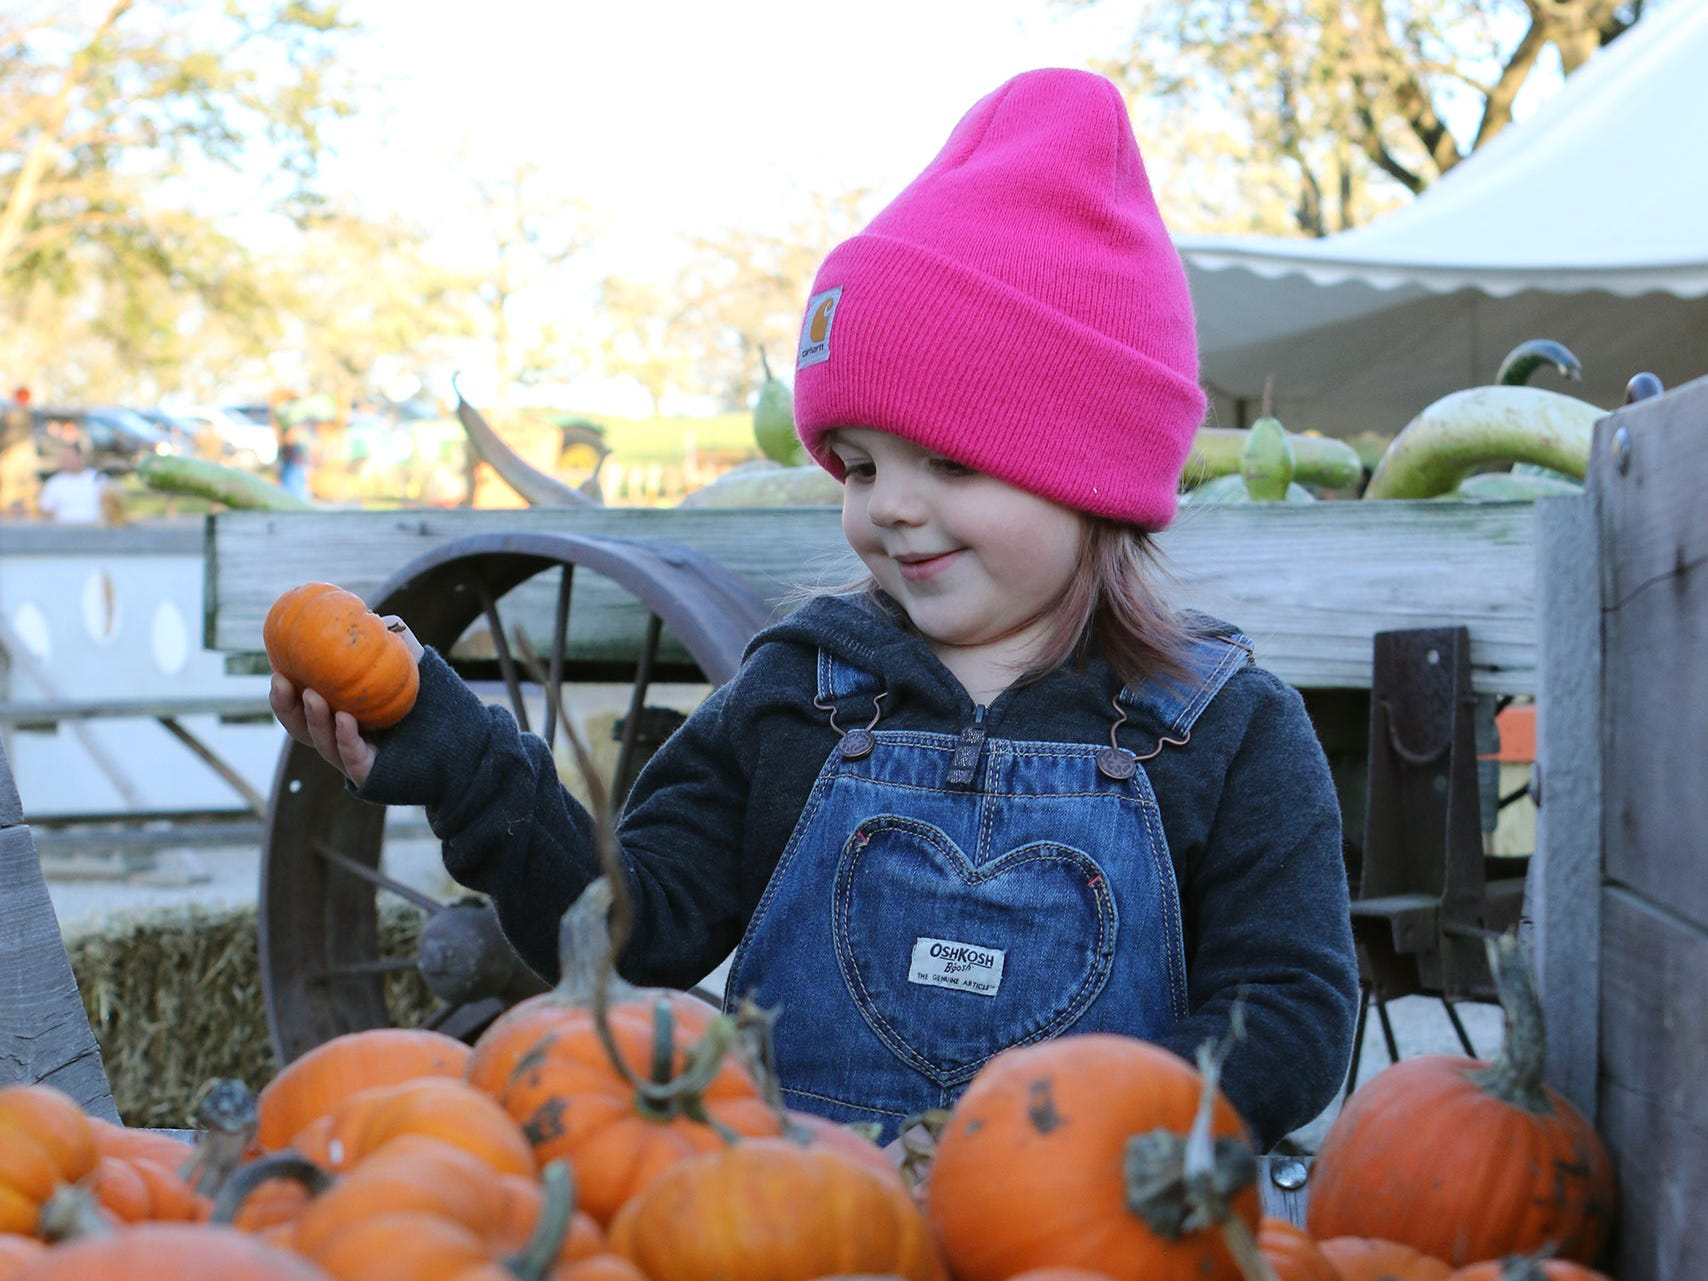 Ellie Bauer, 3, of Mukwonago, picks out her favorite mini pumpkins at Schuett Farms in Mukwonago on Oct. 22.